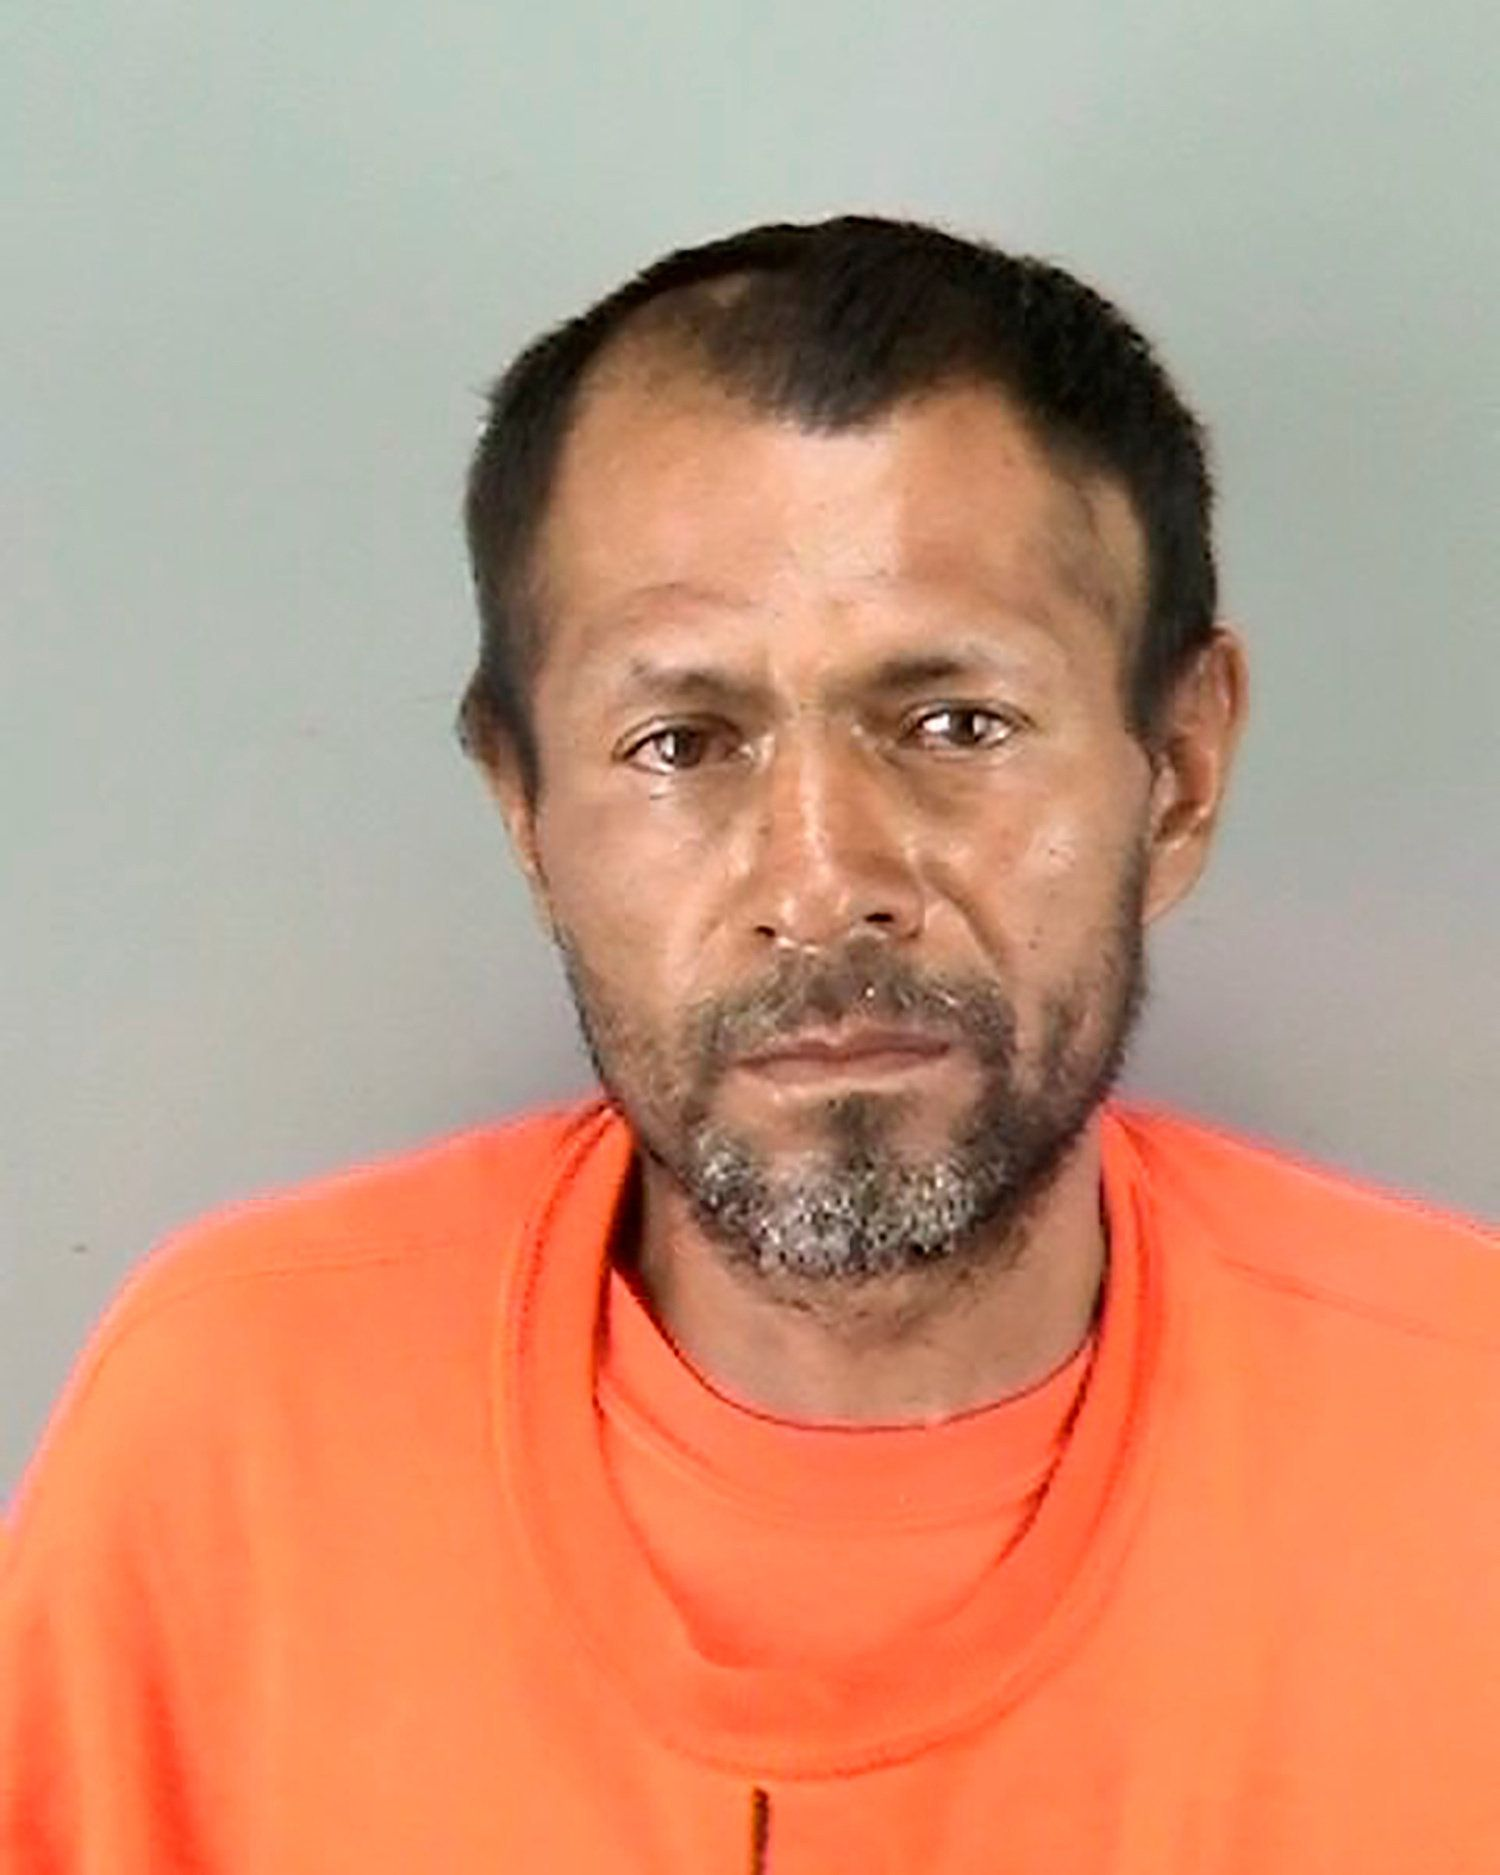 FILE PHOTO: Jose Ines Garcia Zarate, arrested in connection with the July 1, 2015, shooting of Kate Steinle on a pier in San Francisco, California, U.S. is seen in an undated photo released by the San Francisco Police Department.    Courtesy San Francisco Police Department/Handout via REUTERS   ATTENTION EDITORS - THIS IMAGE HAS BEEN SUPPLIED BY A THIRD PARTY.